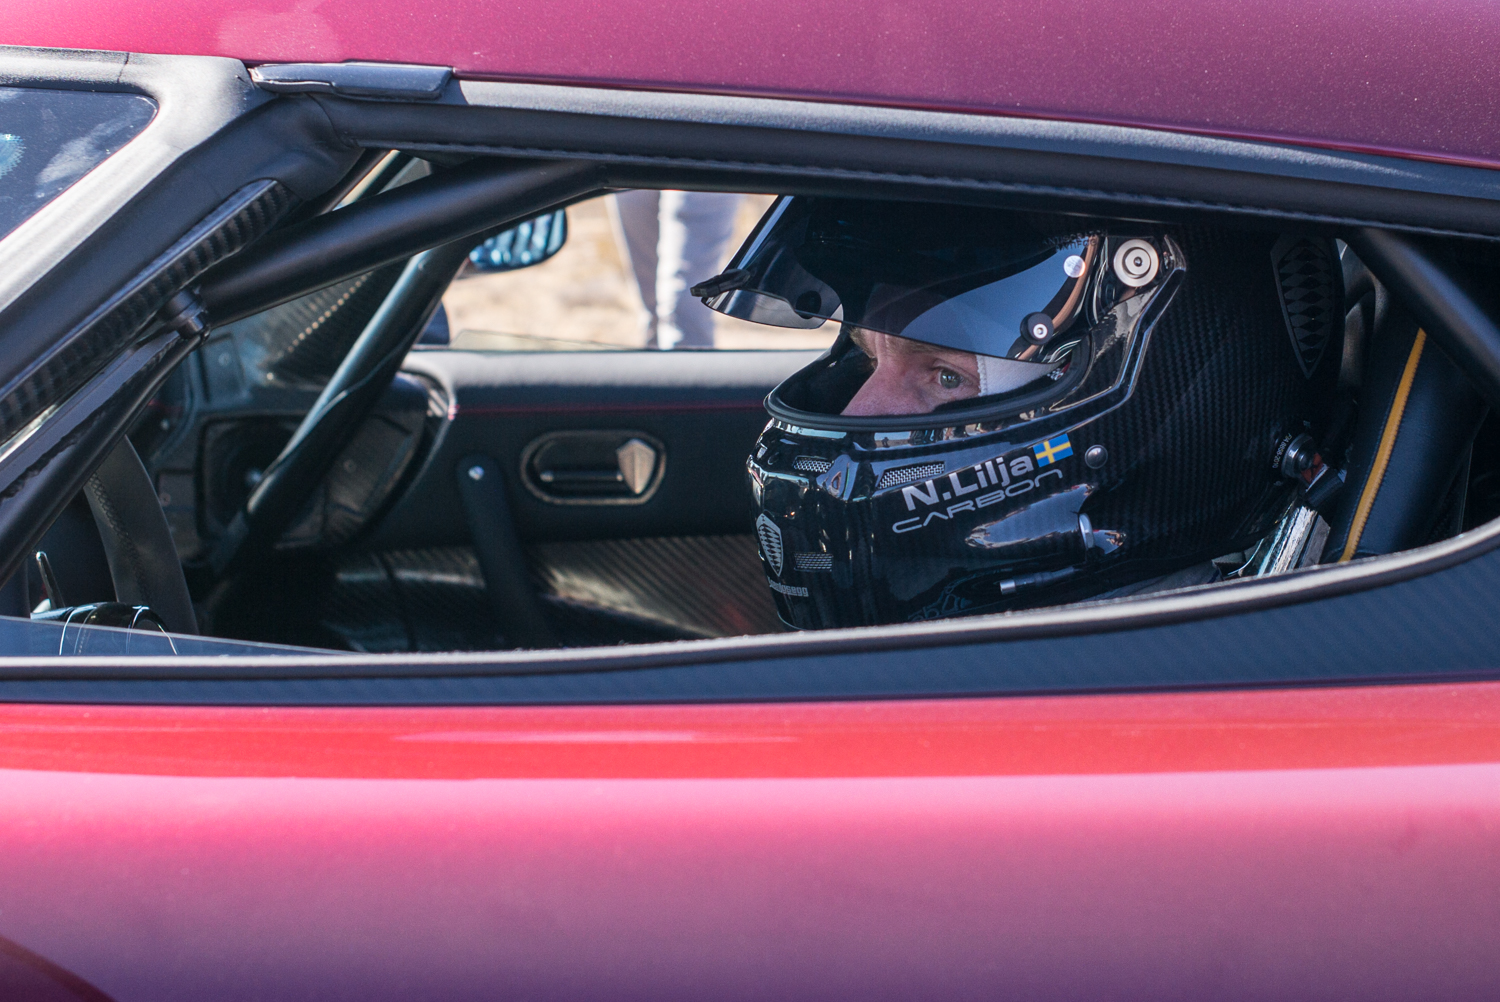 Niklas Lilja behind the wheel of the Koenigsegg Agera RS